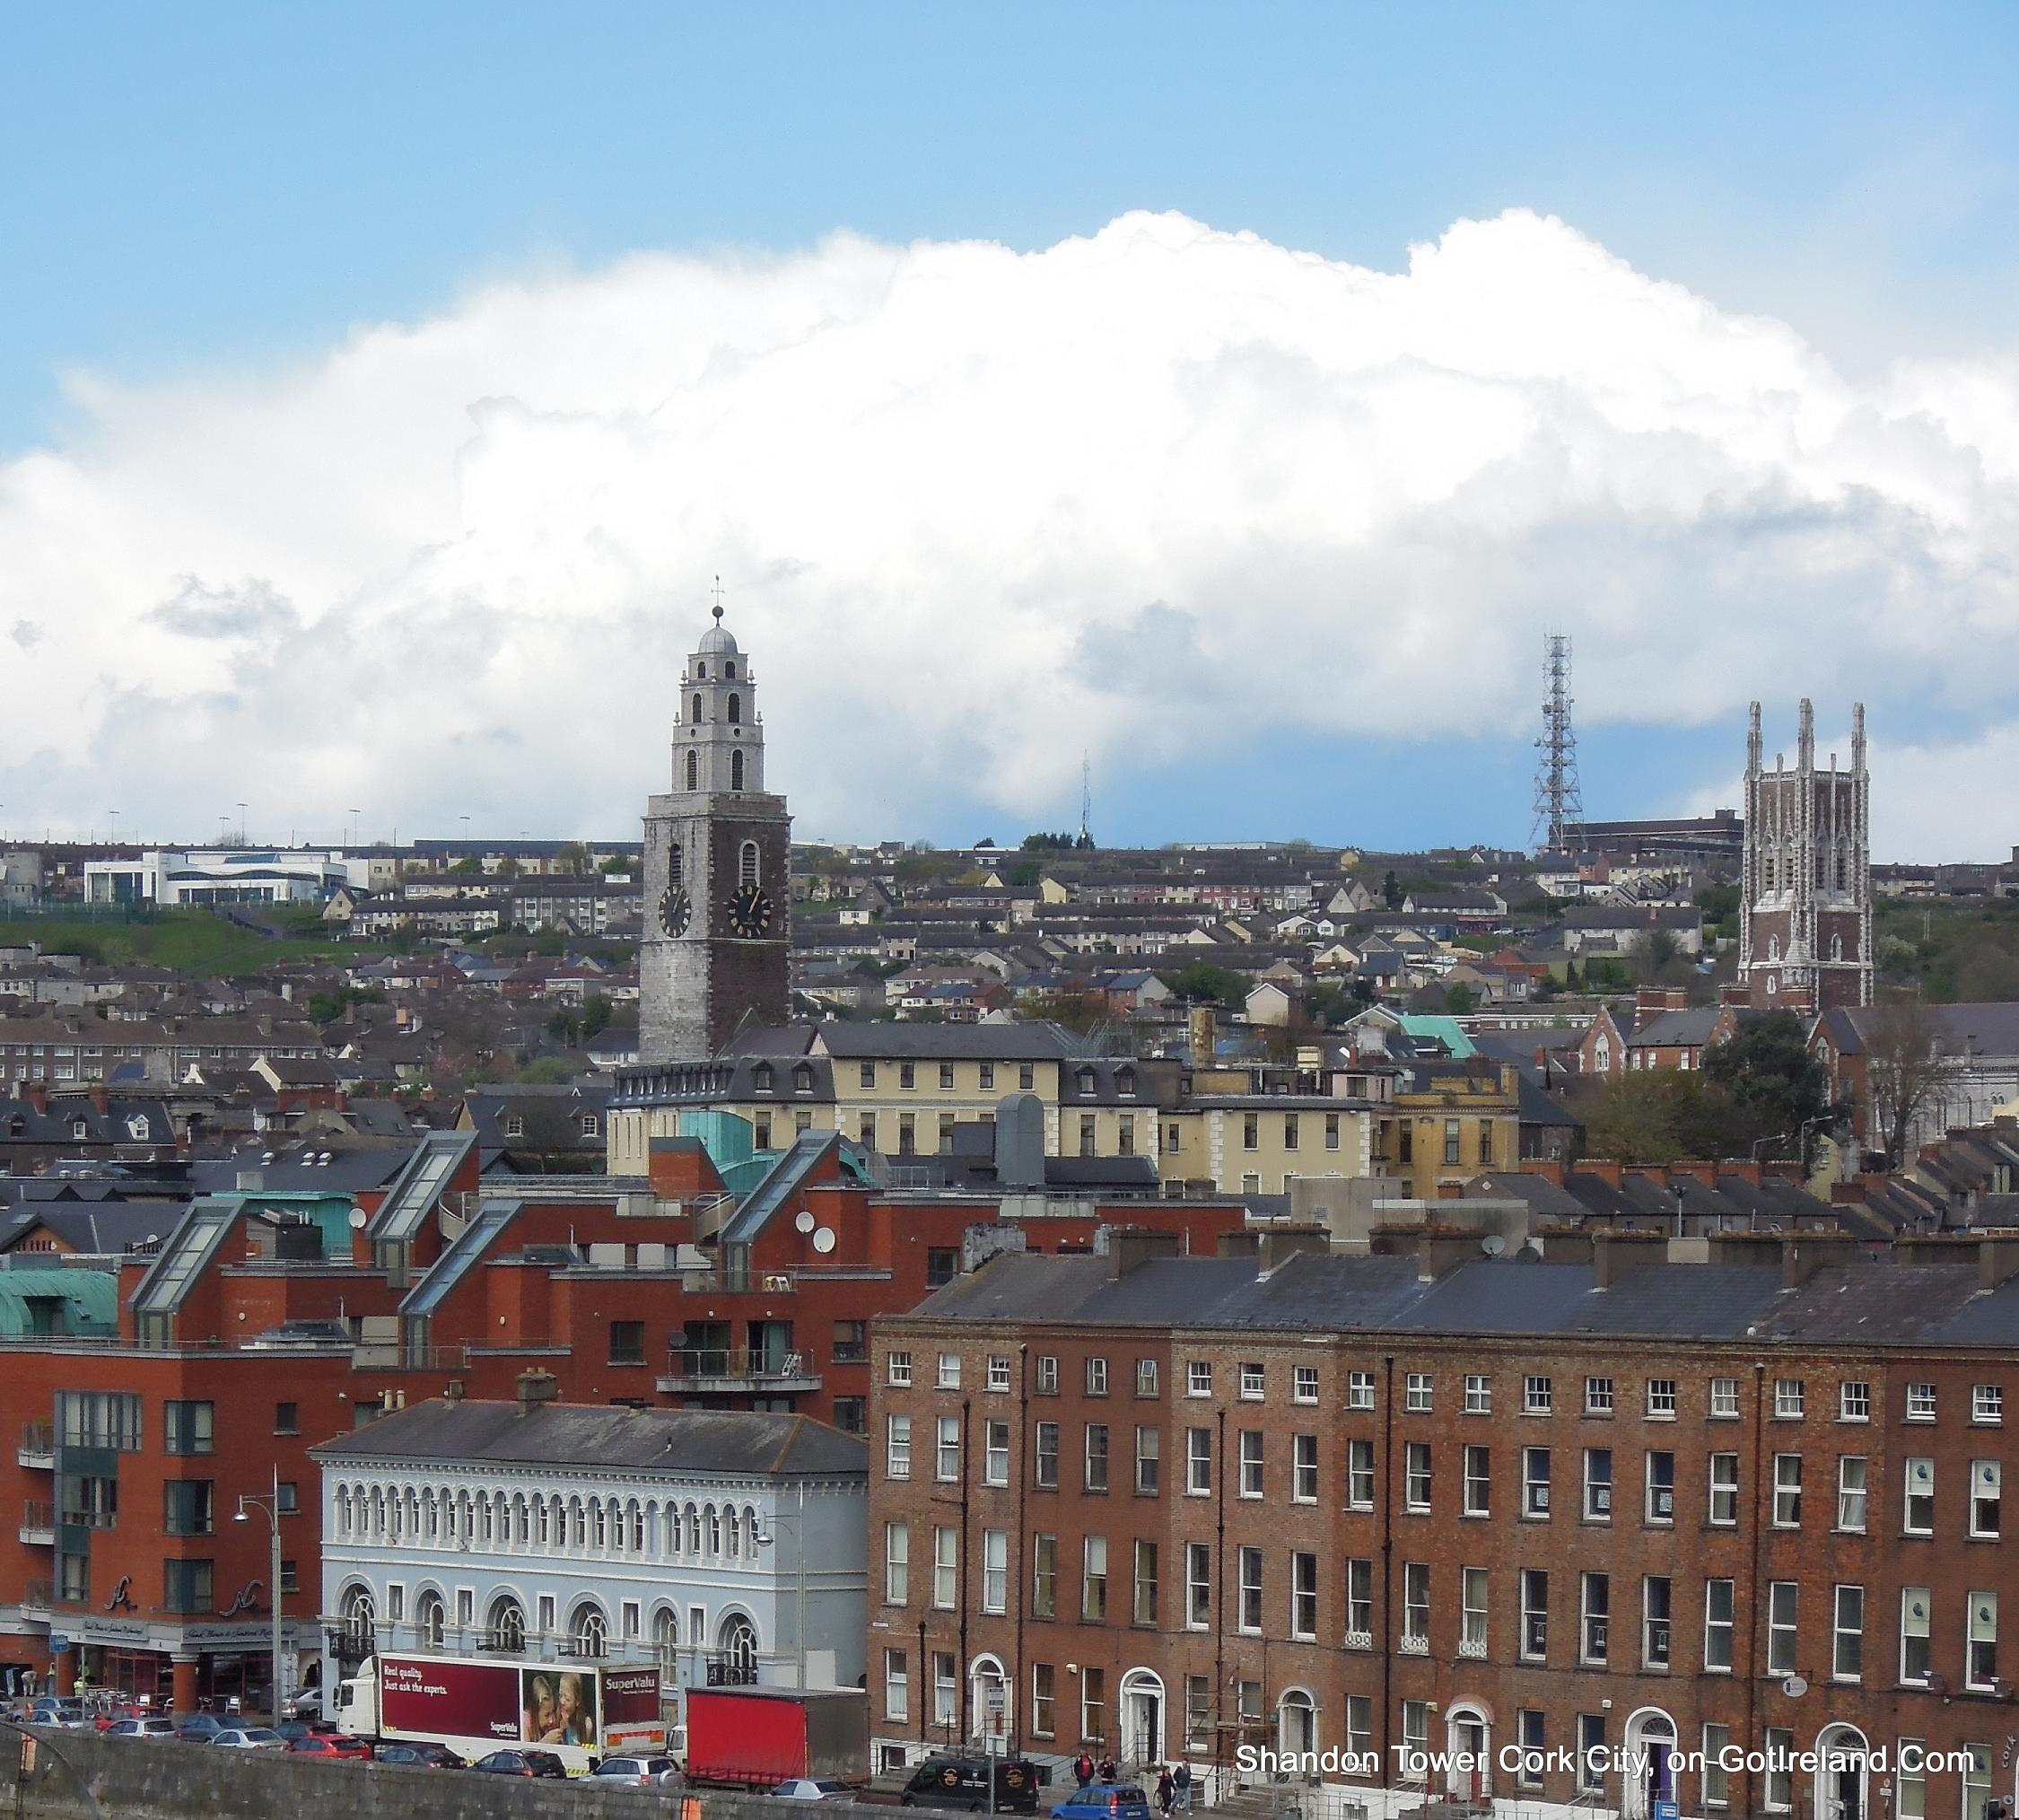 45 things to do in Cork City